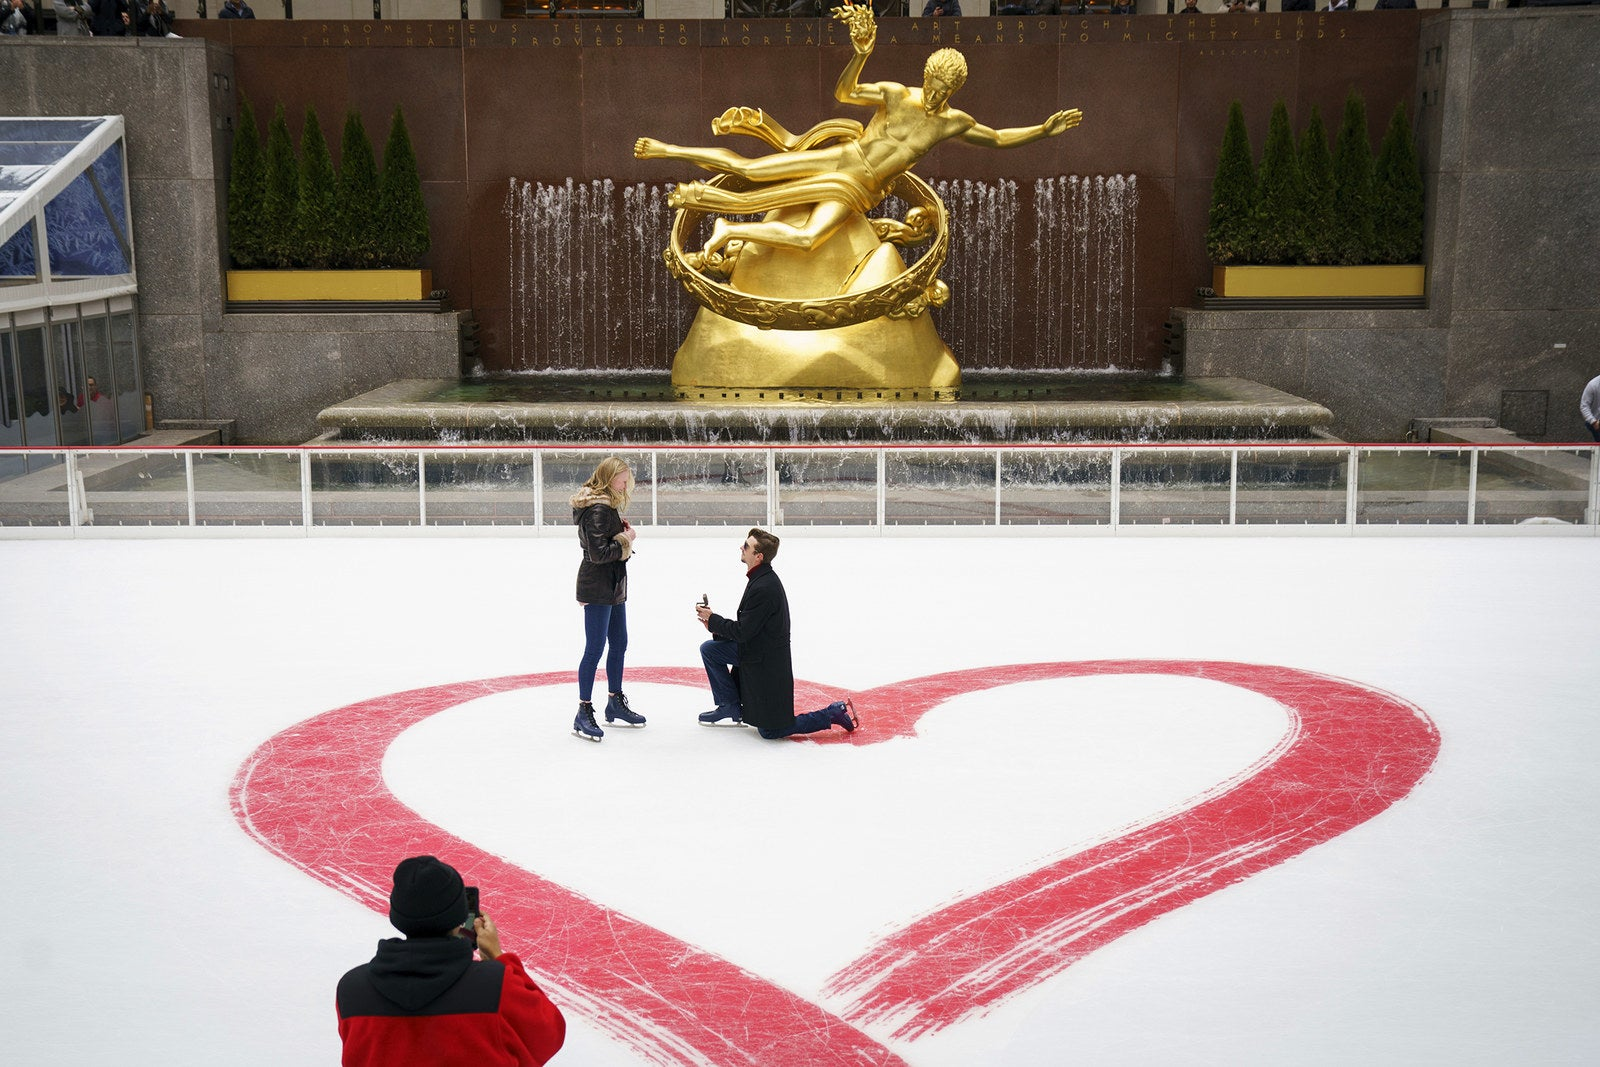 Jacob Cox proposes to Cierra Sorrells on Valentine's Day at the Rockefeller Center ice rink on Feb. 14, in New York City. Sorrells said yes.